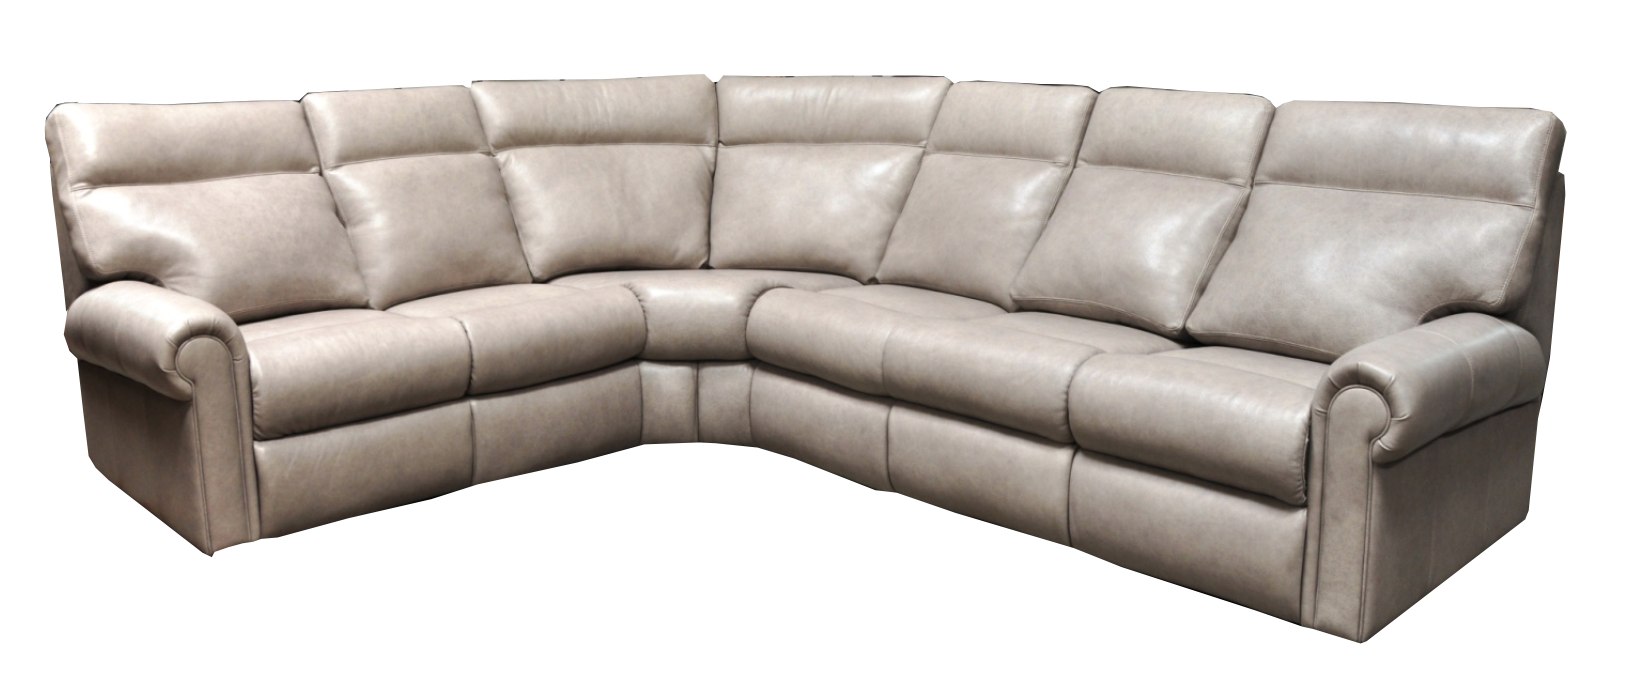 Omnia Curtis Sectional - leatherfurniture